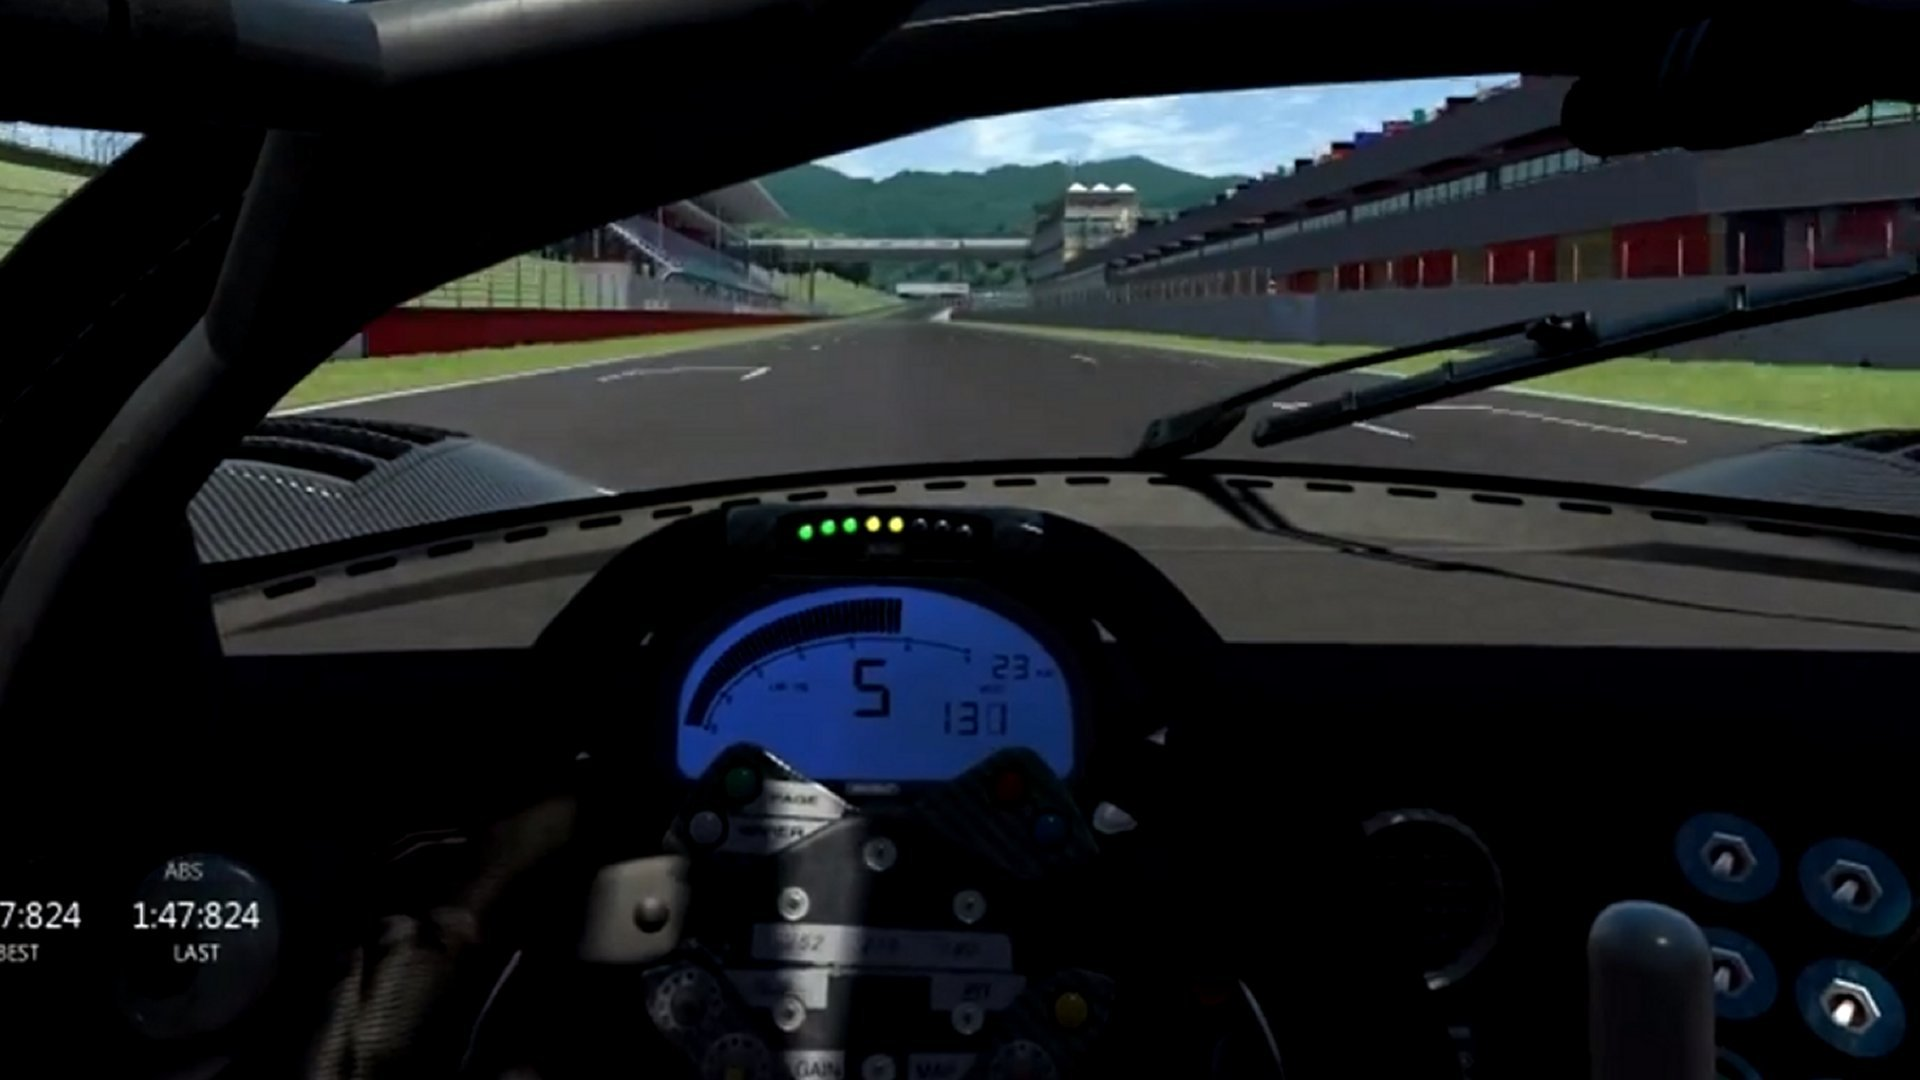 P4/5 @ Mugello in Assetto Corsa w/ TX Racing Wheel